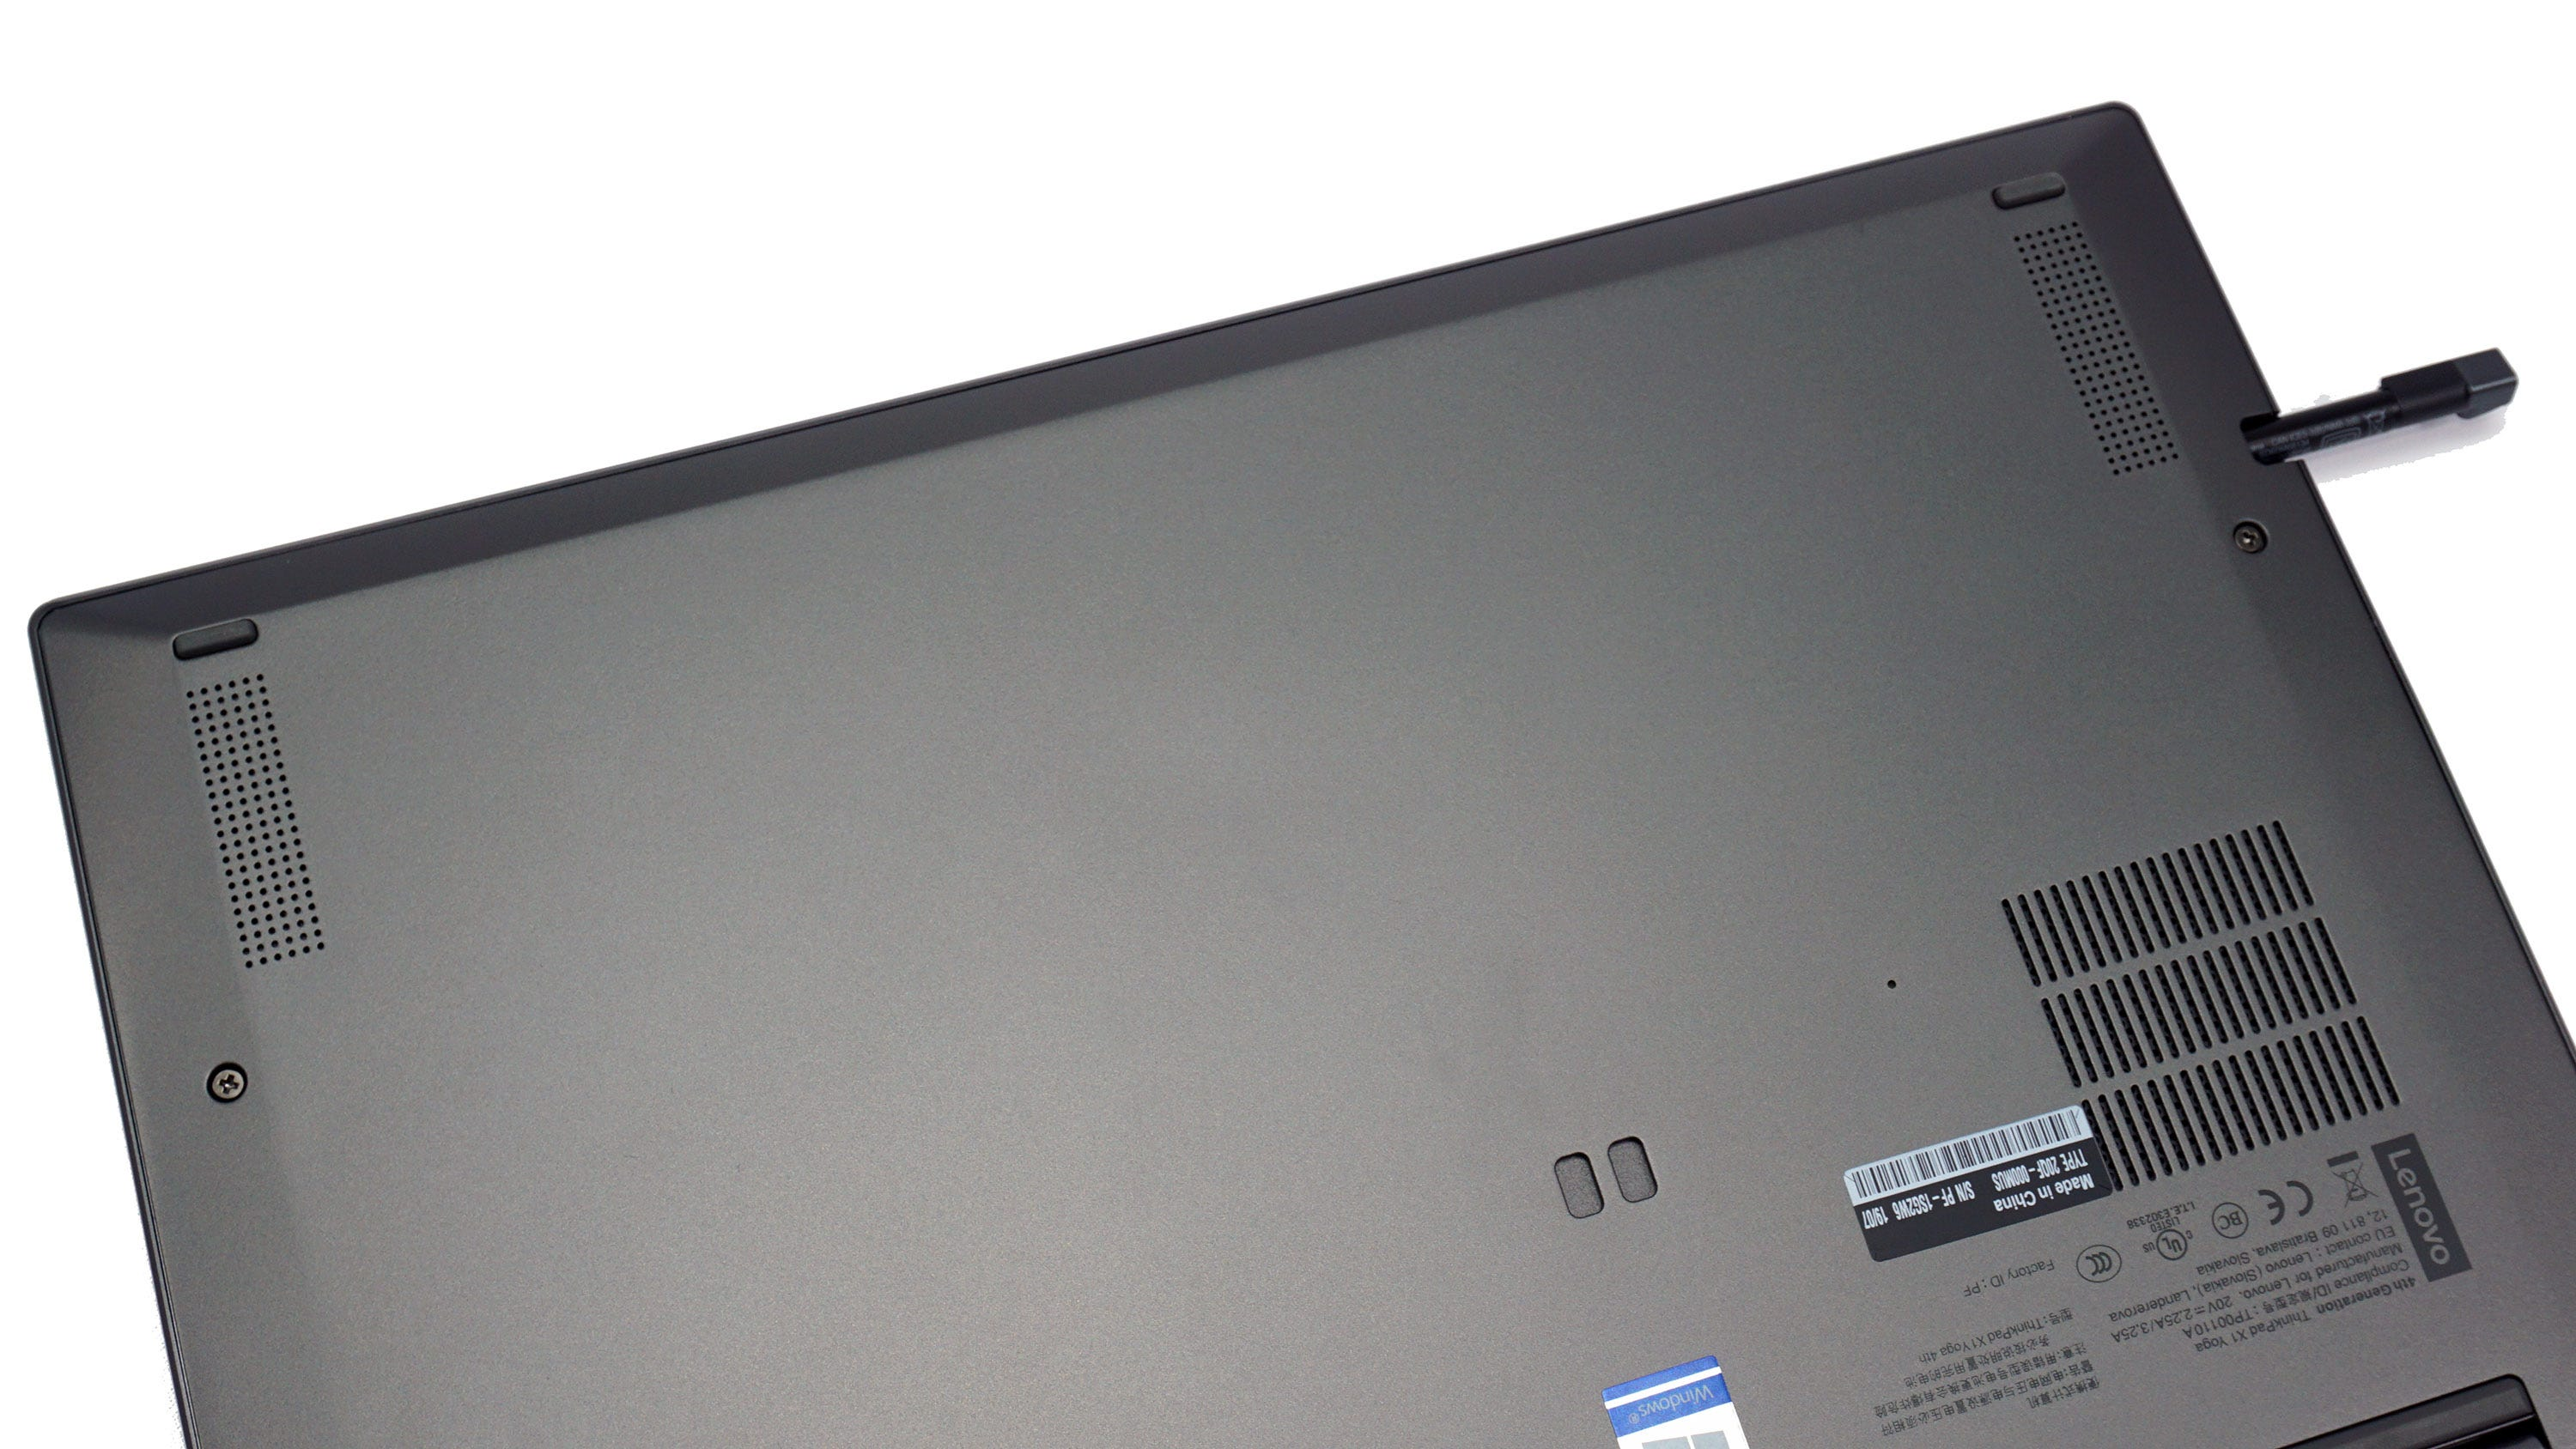 The small speaker grilles on the bottom of the X1 Yoga laptop.